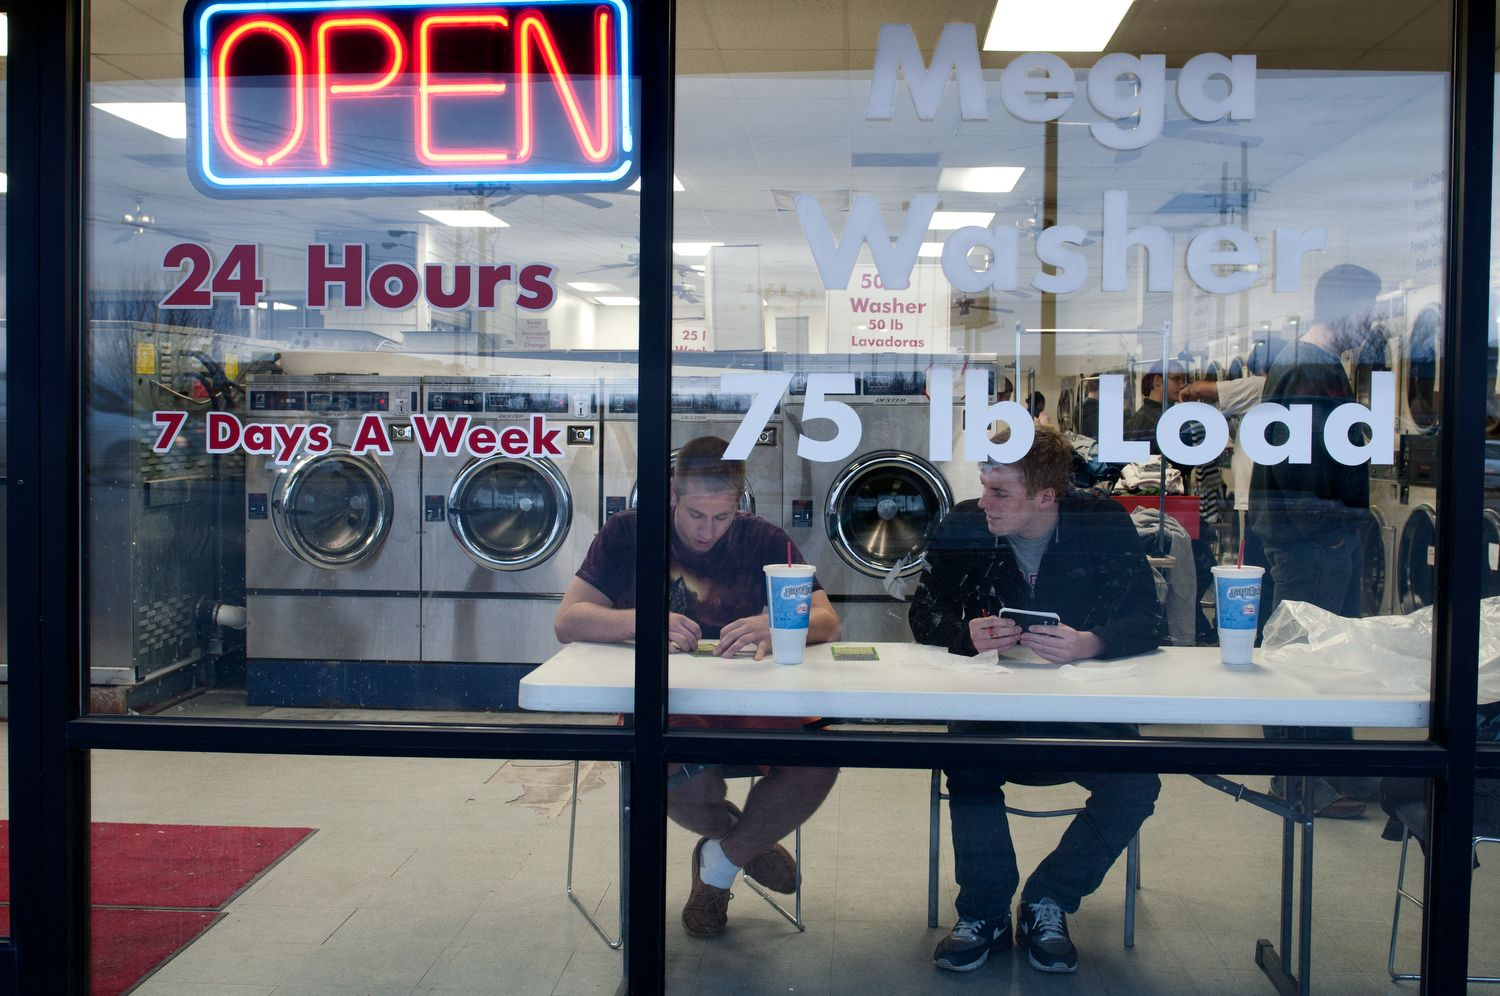 The Laundromat Open 24hours Business marketing plan